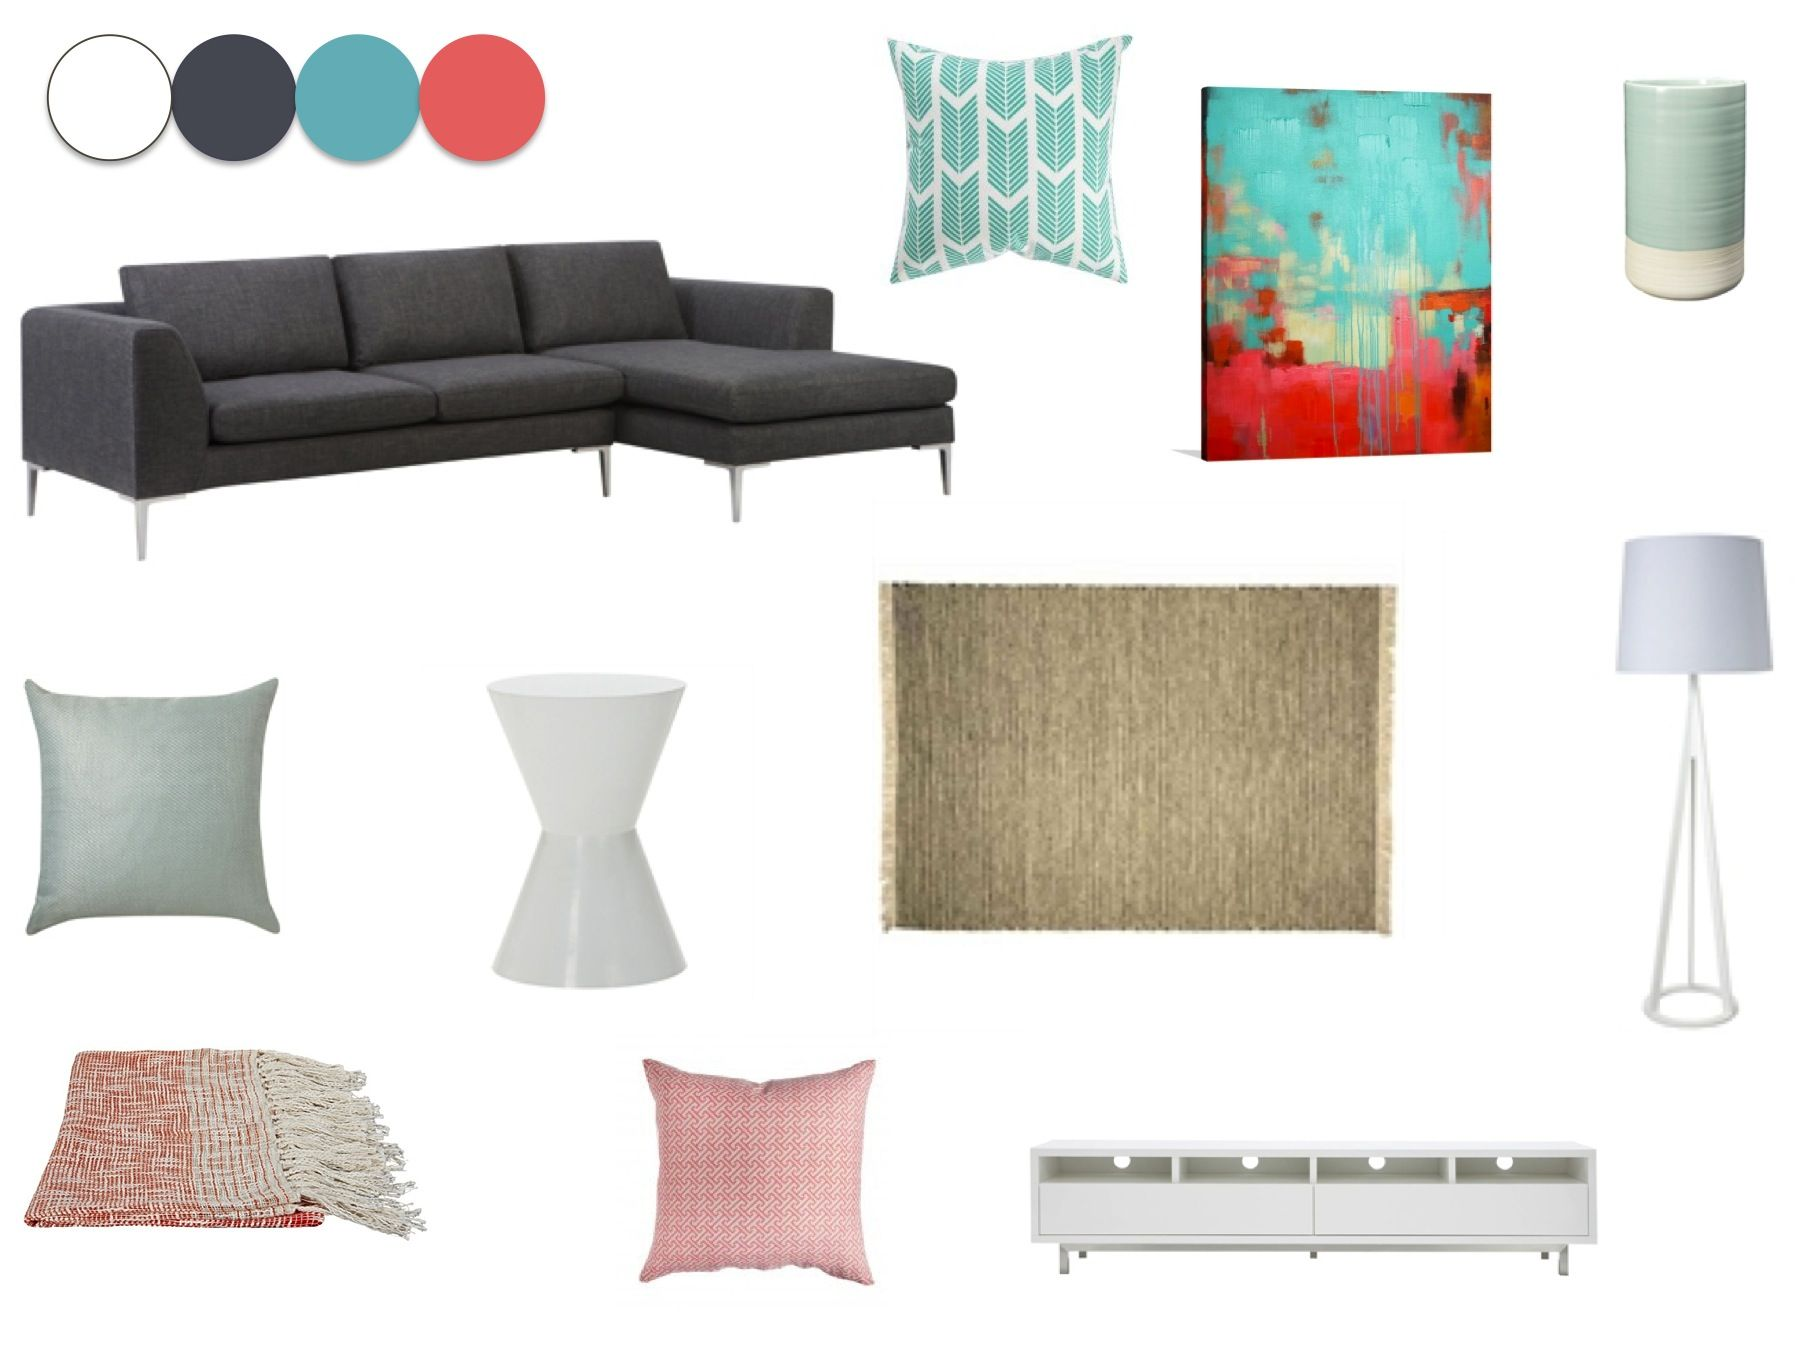 Living room option 2 - Aqua and coral